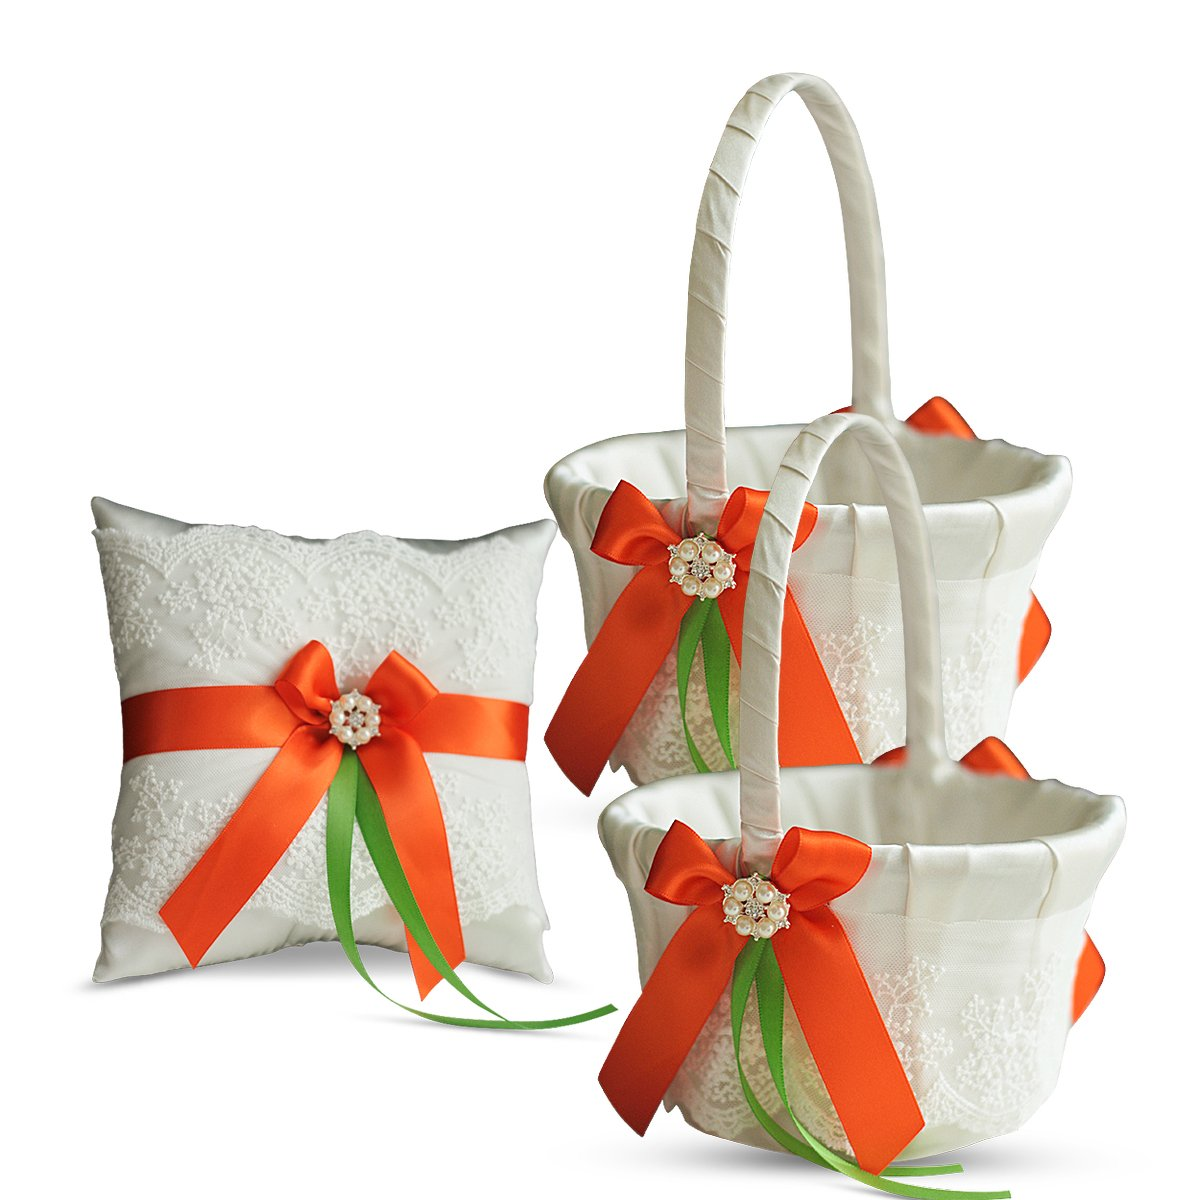 Alex Emotions Ivory Ring Bearer Pillow and Basket Set | Lace Collection | Flower Girl & Welcome Basket for Guest | Handmade Wedding Baskets & Pillows (Orange Lime)